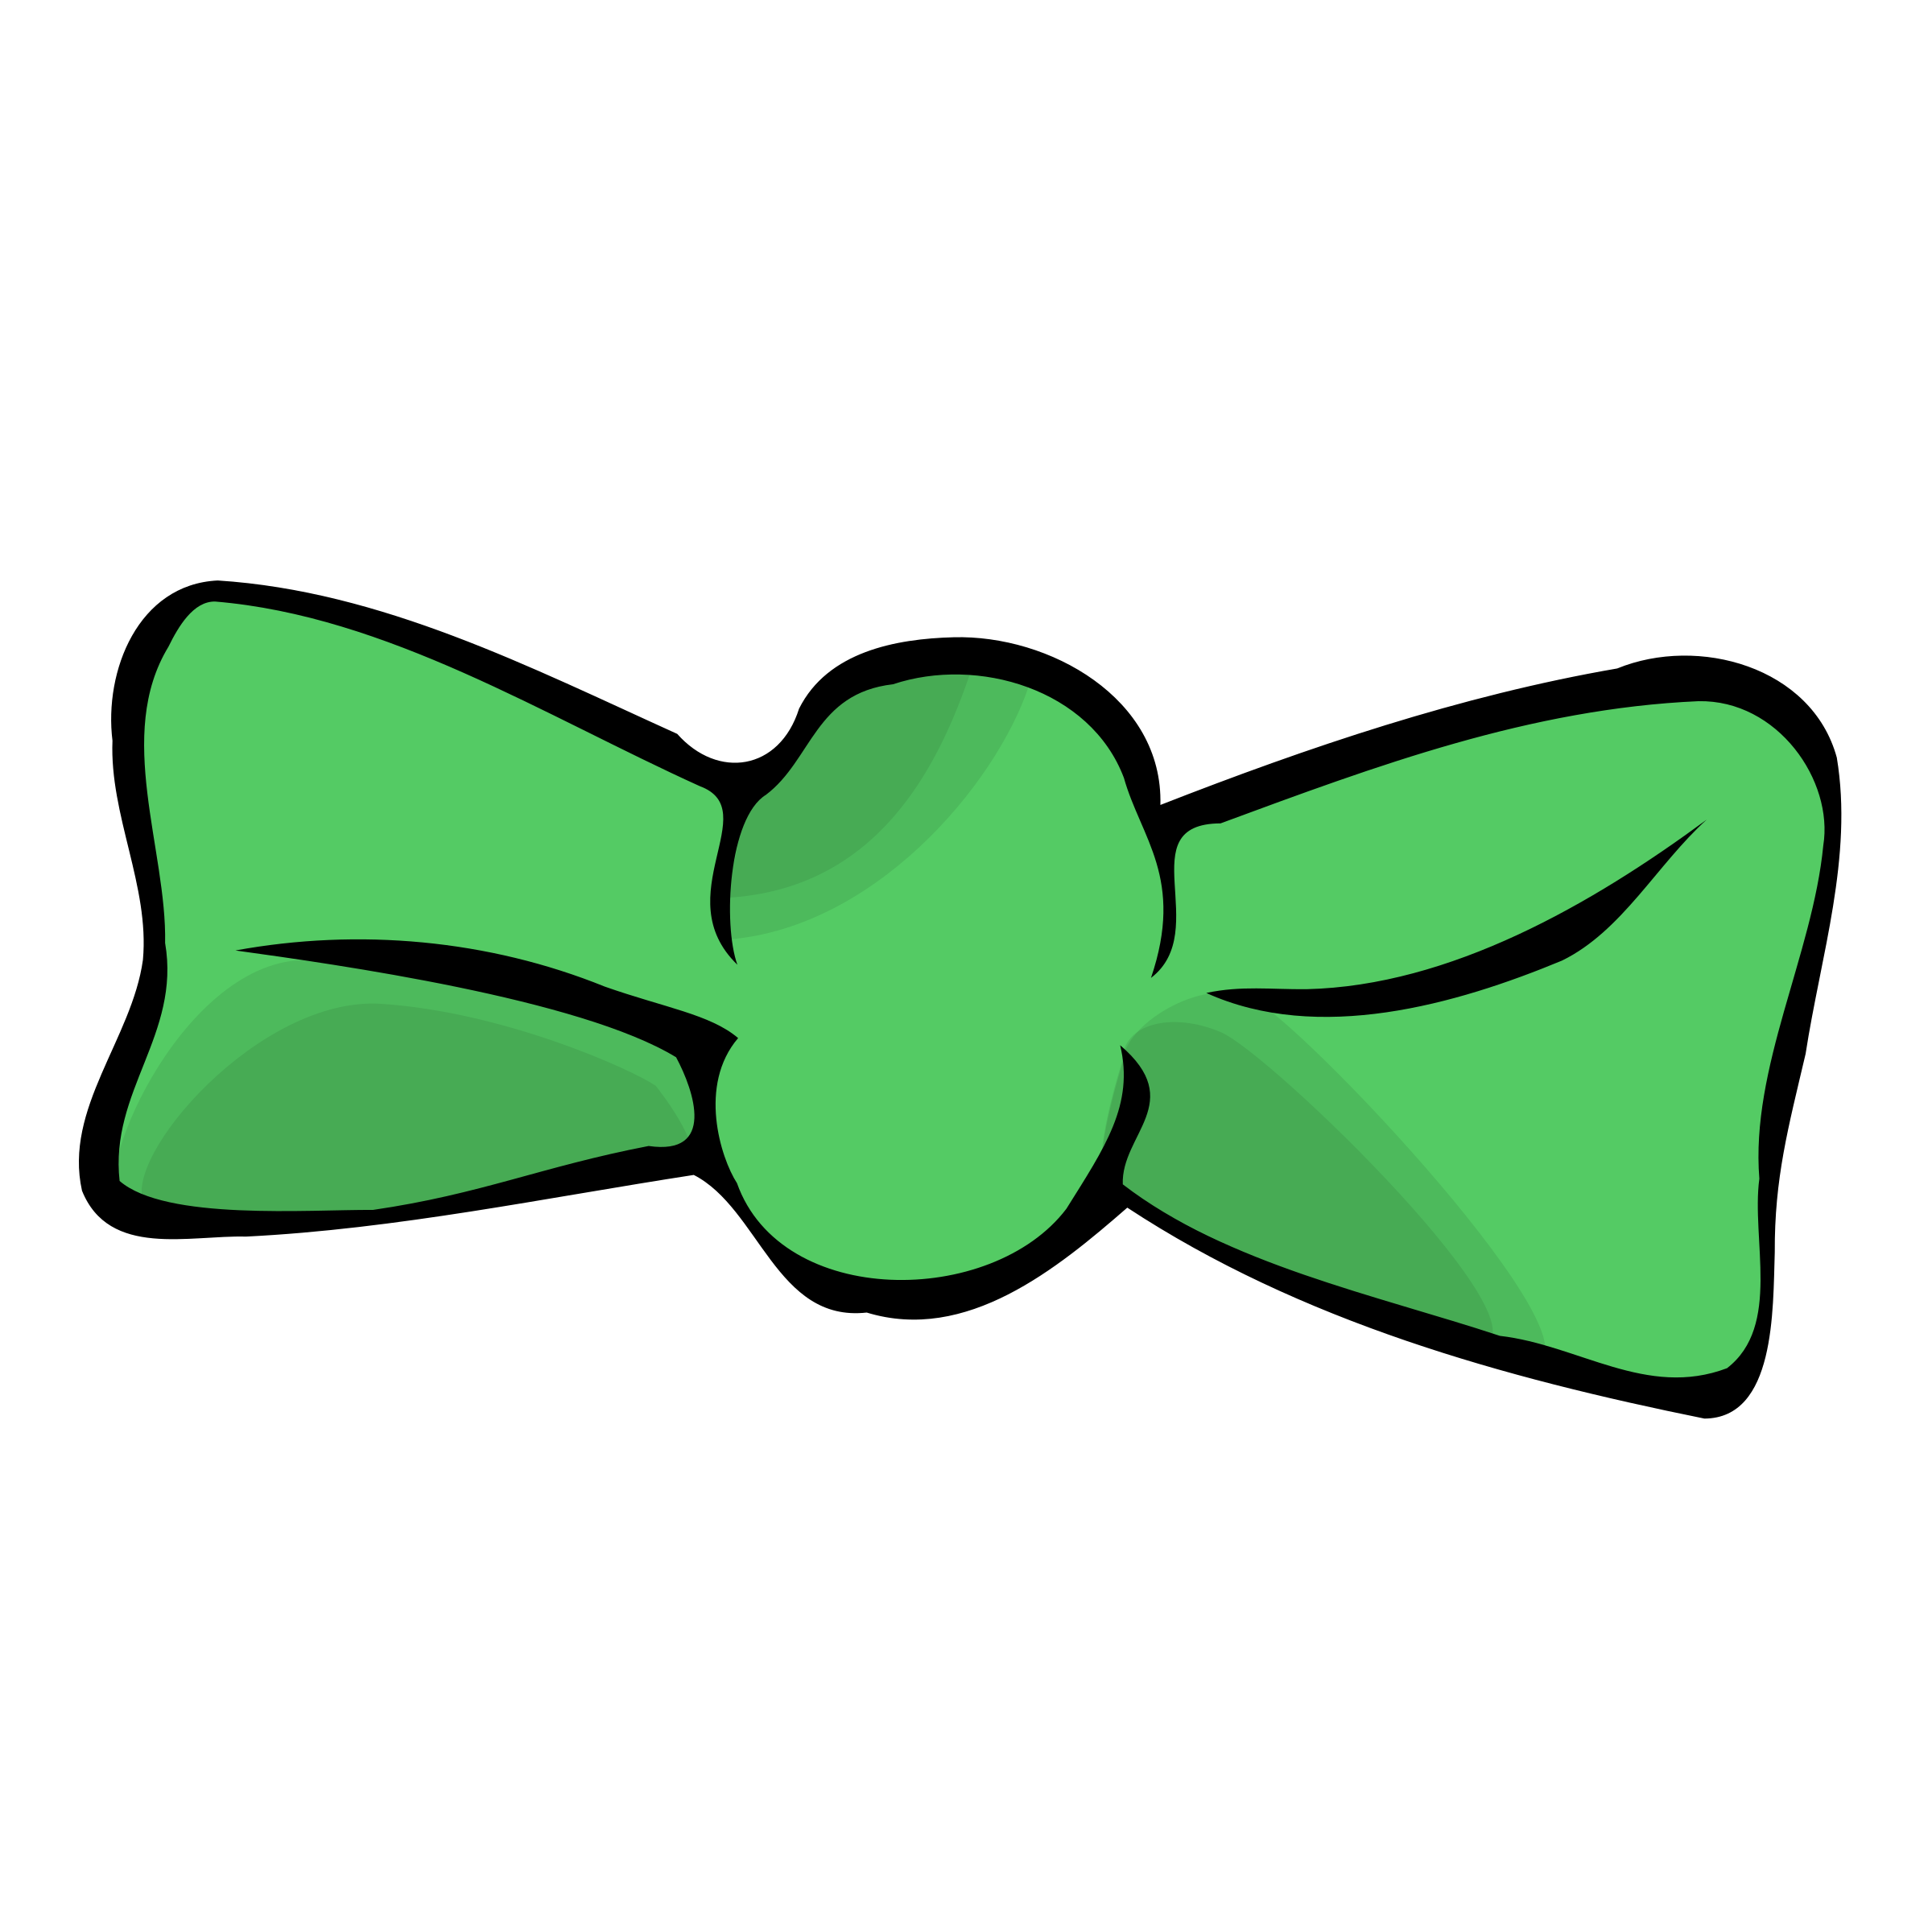 Green Bow Tie Clipart | Free download on ClipArtMag